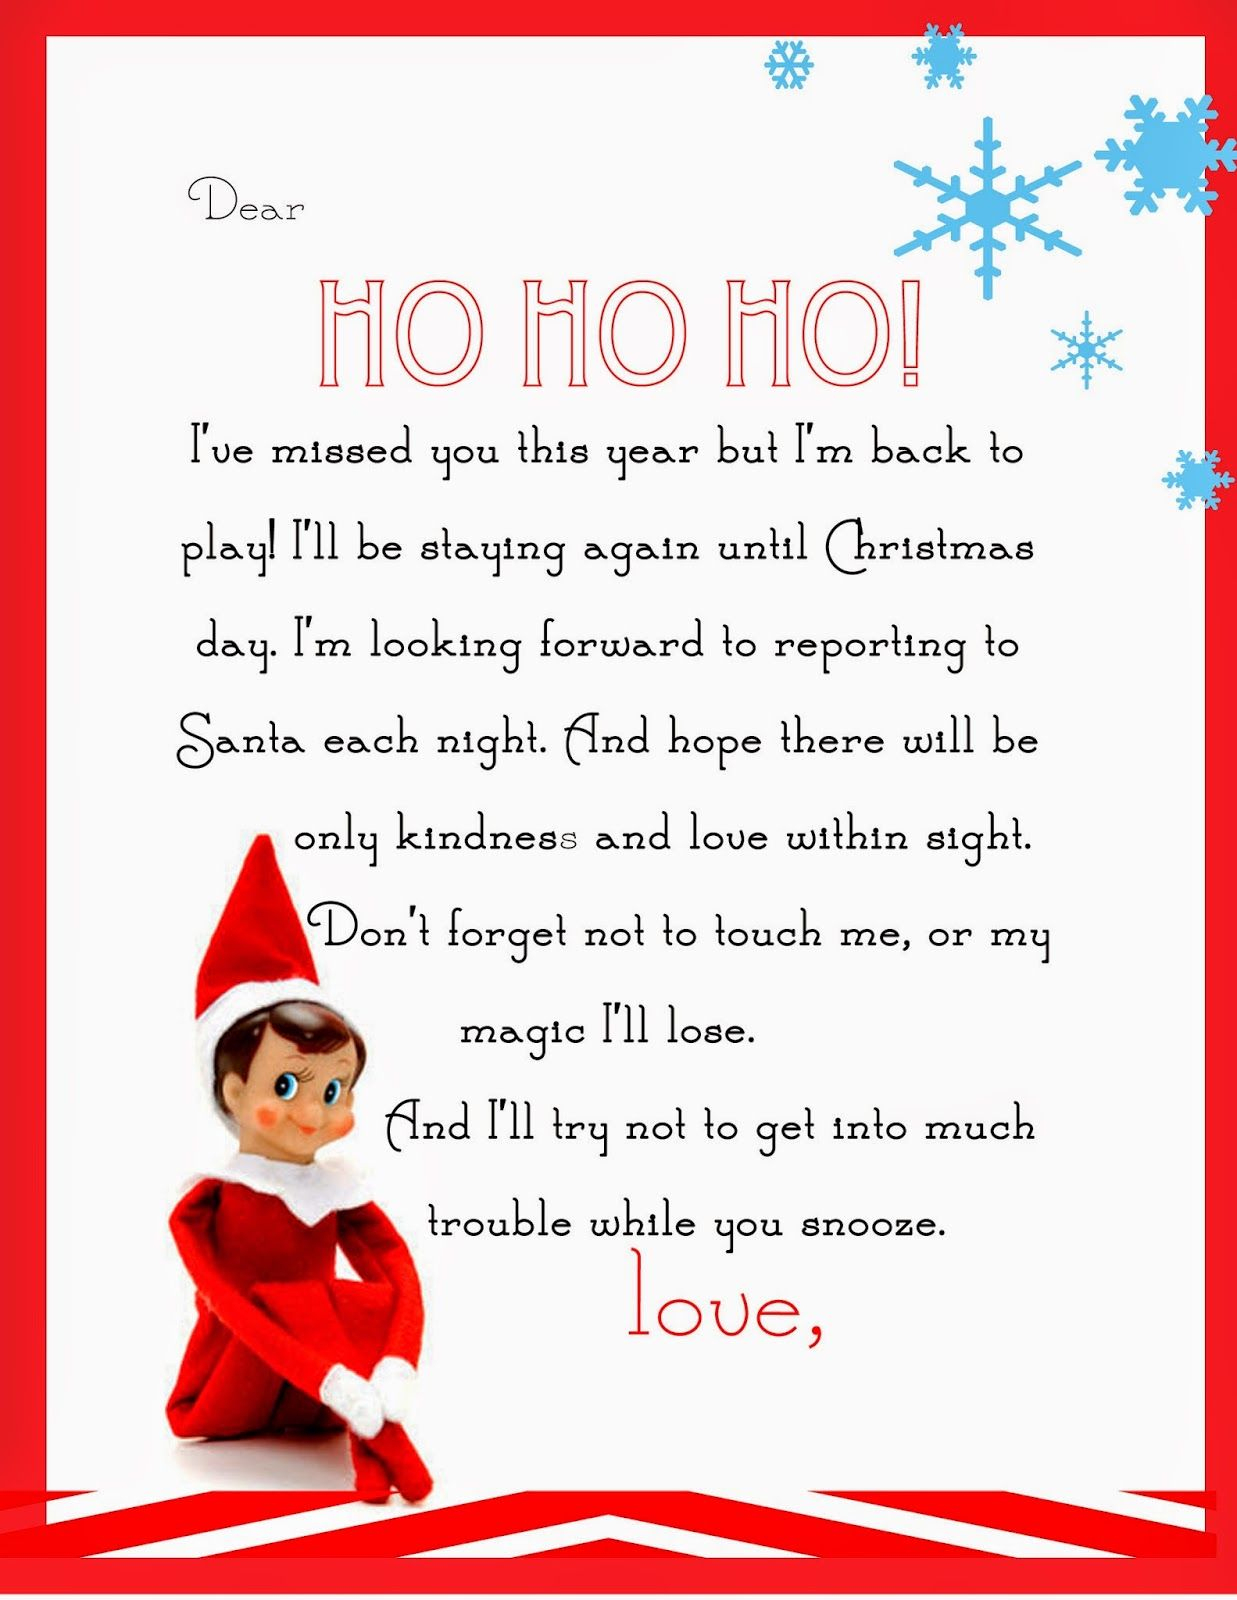 Elf On The Shelf Letter {Free Printable} | Elf On The Shelf | Elf On - Elf On A Shelf Goodbye Letter Free Printable